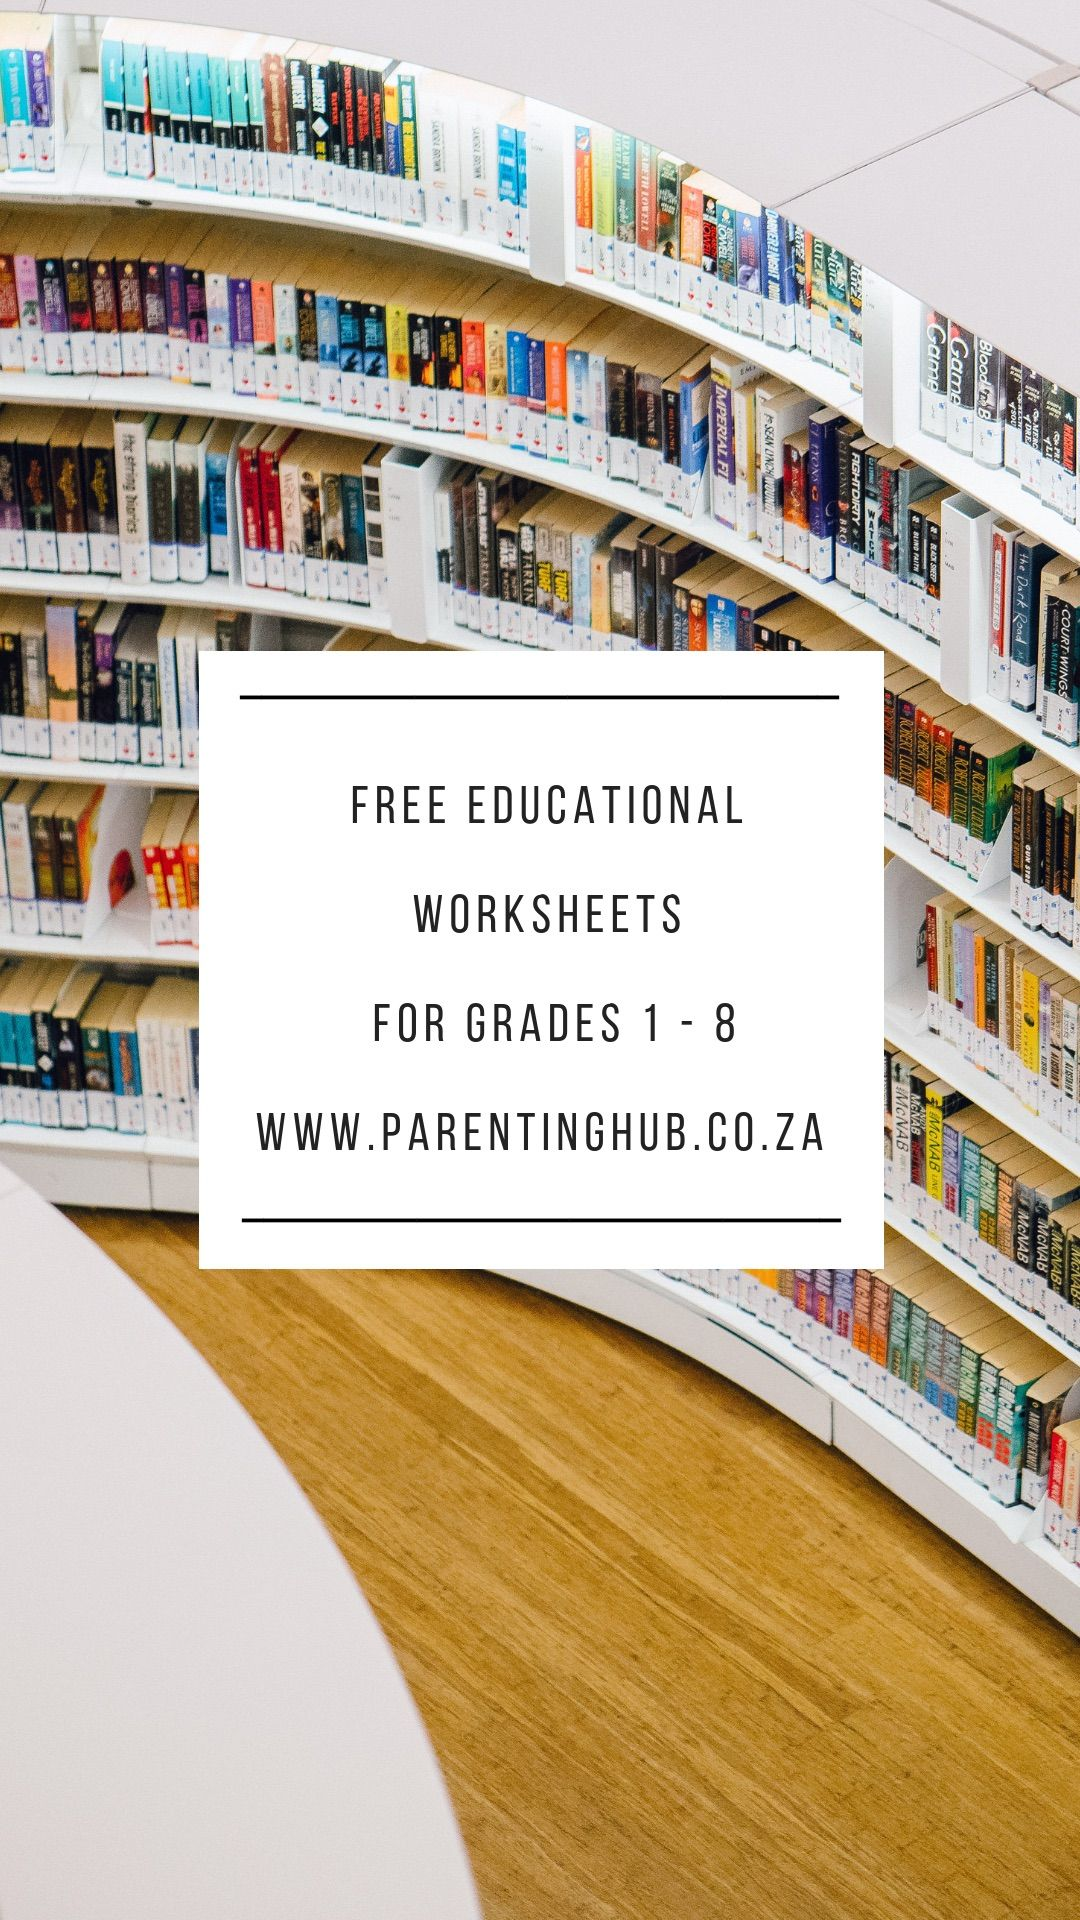 Visit Us Today For Free Math Worksheets For Grades 1